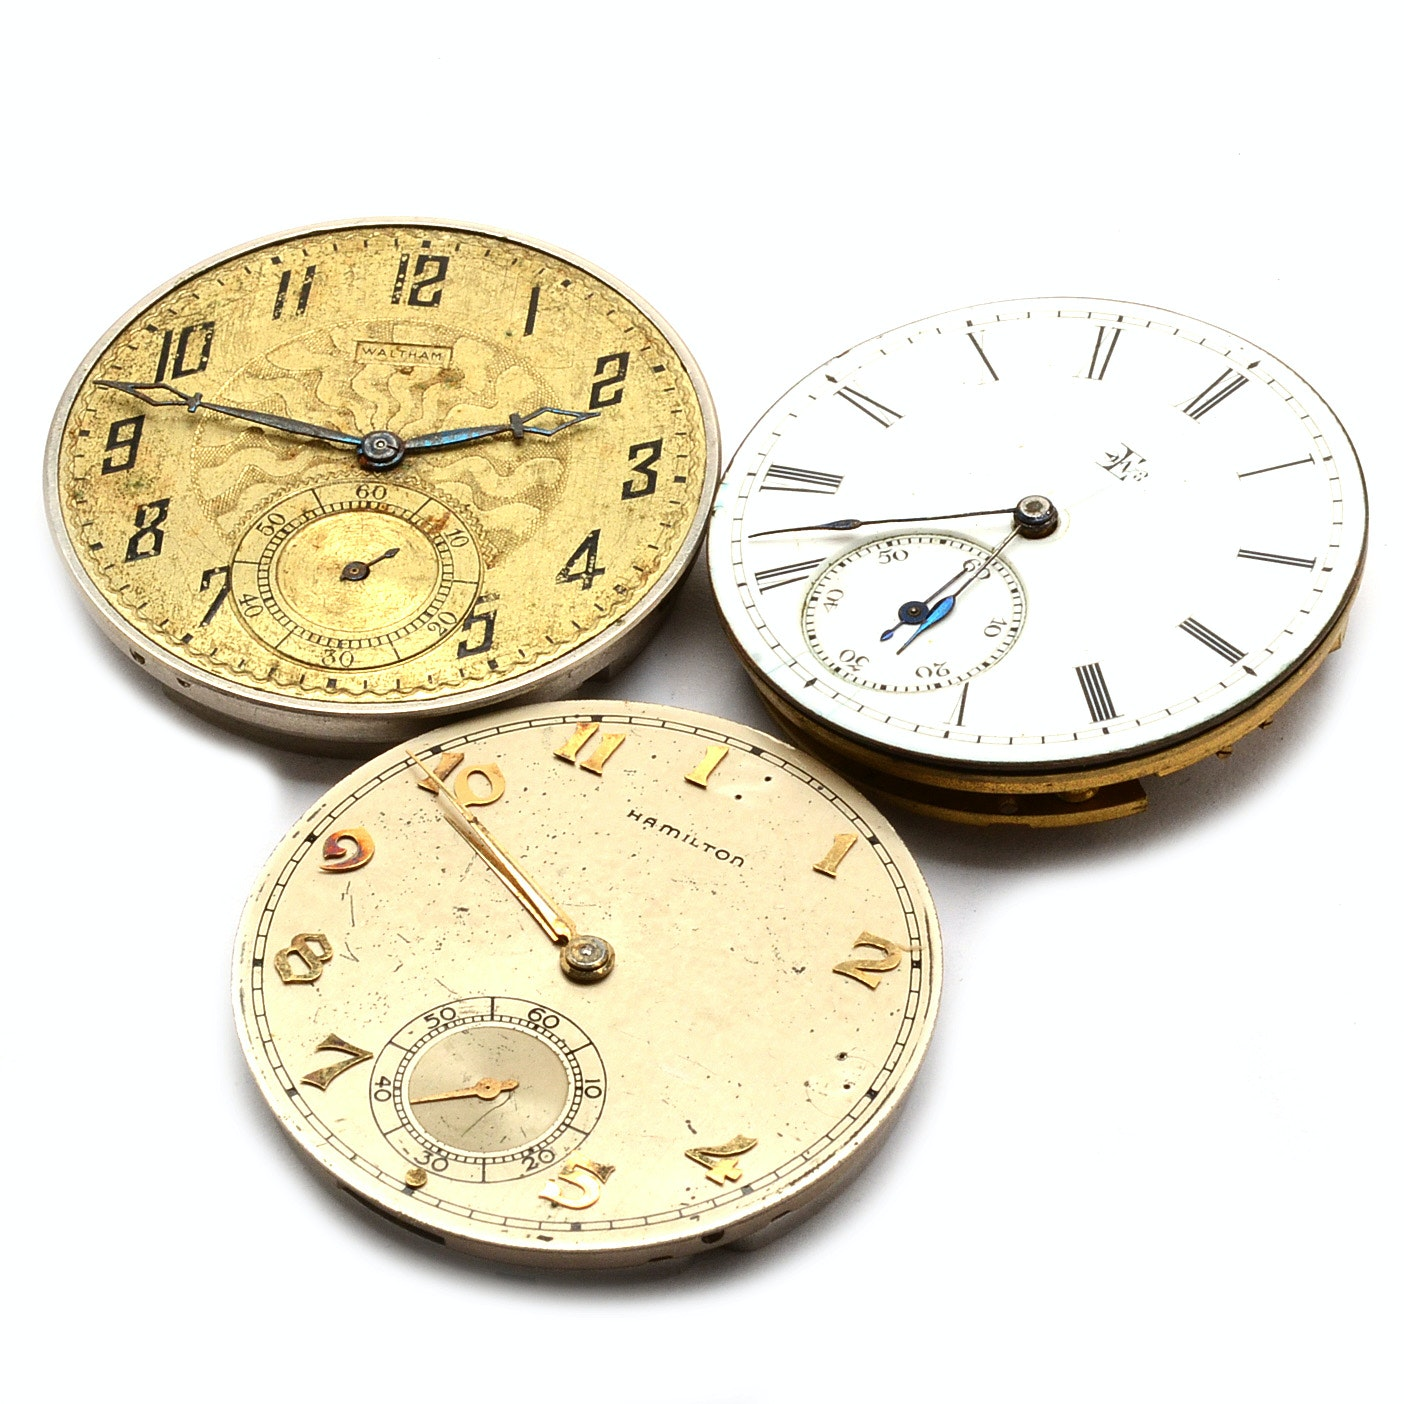 Three Pocket Watch Movements Including Waltham and Elgin